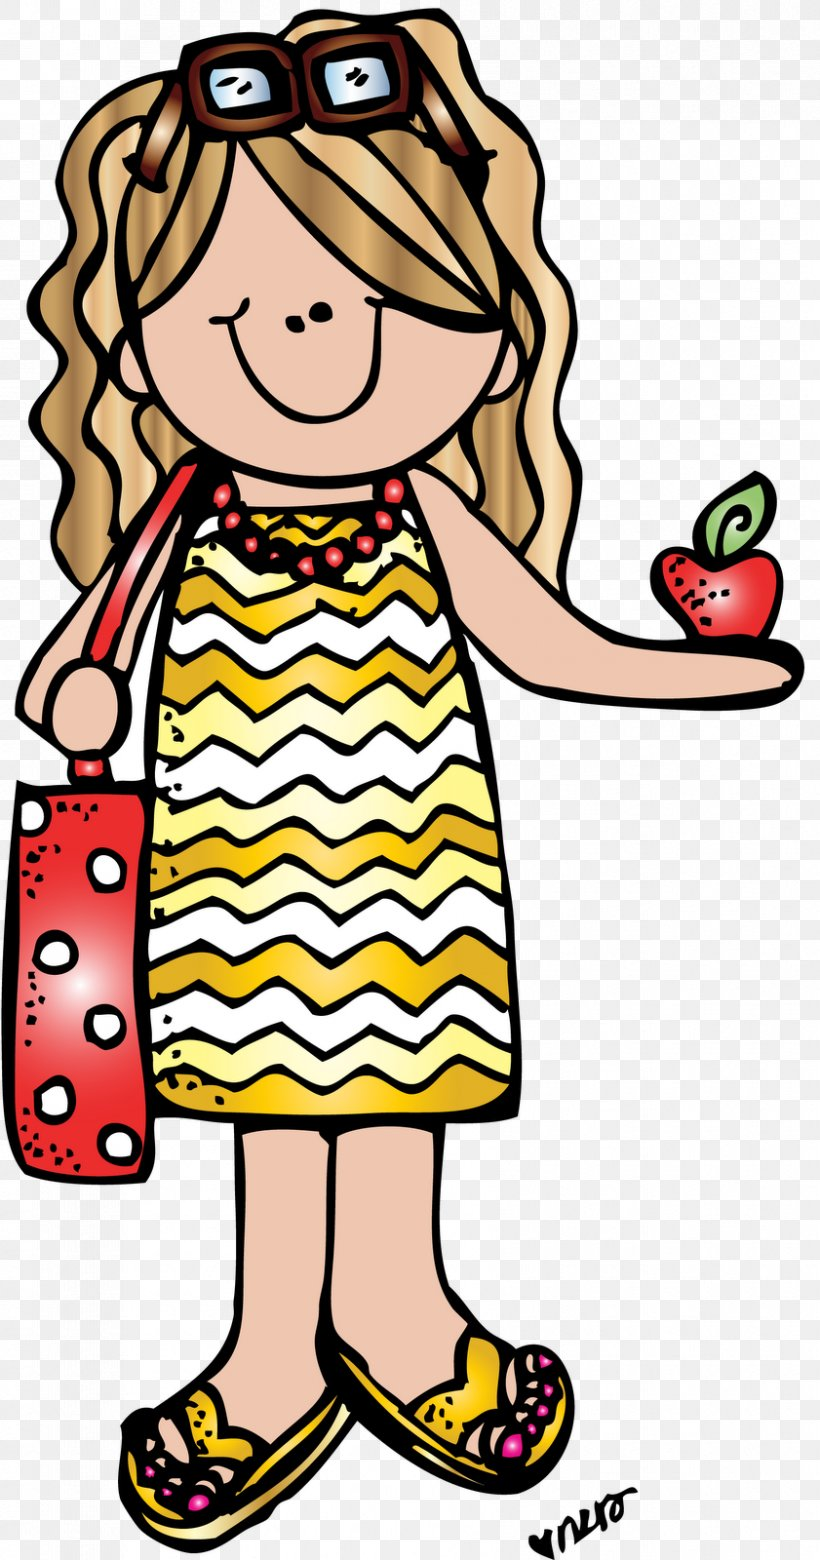 Student Teacher Clip Art For Summer Clip Art, PNG.